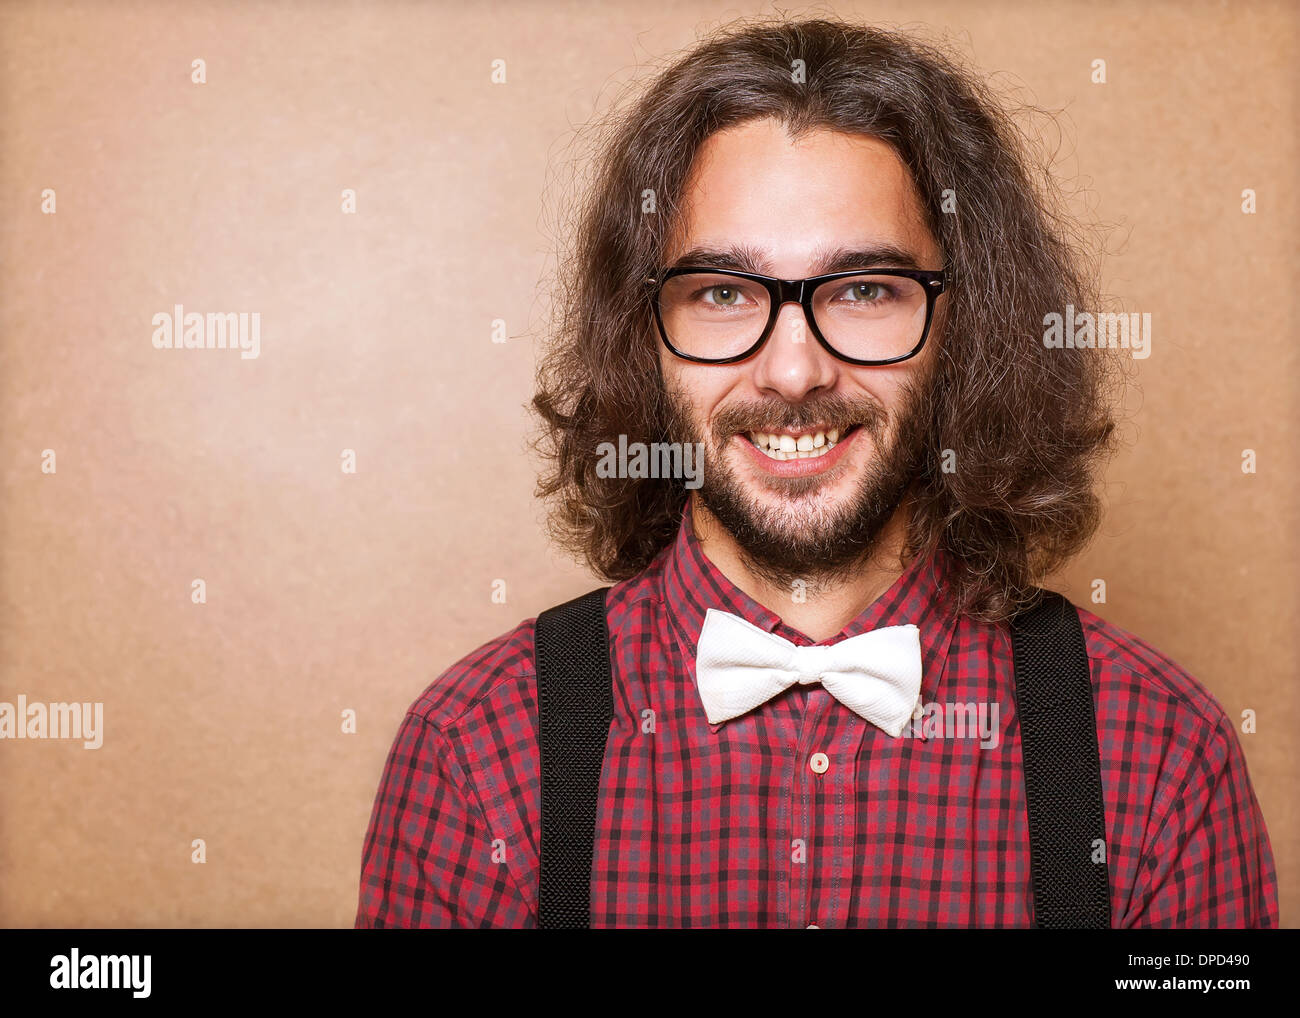 Hipster guy 's clothes in plaid shirt , suspenders and ...